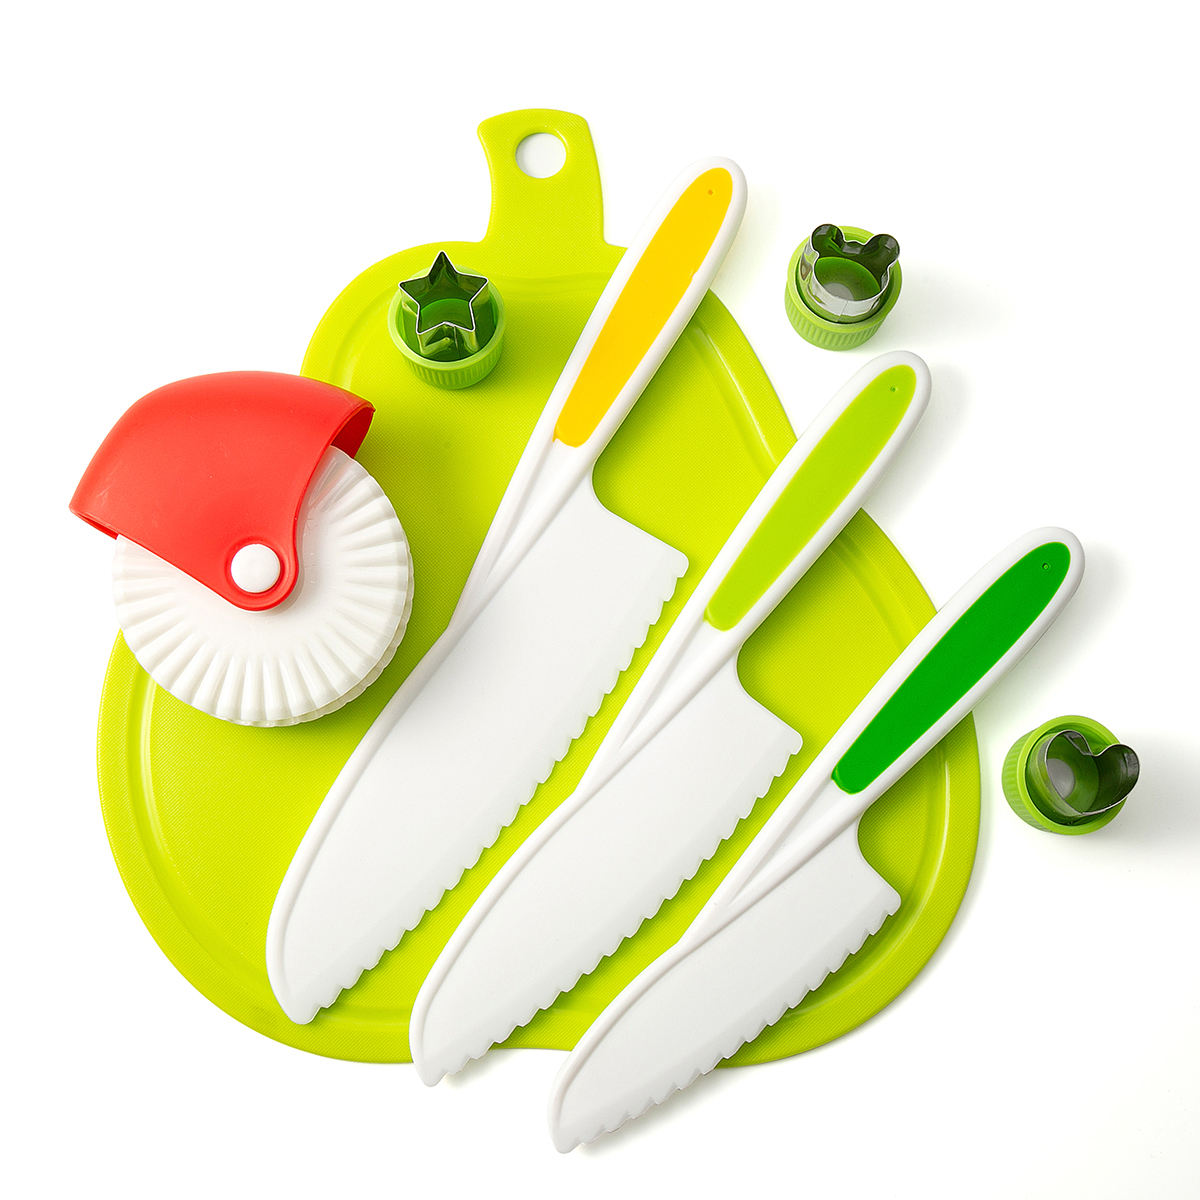 colorful pear shape Cutting Board with PP kids knife and cute cookie mold cake mold and red pastry cutting wheel